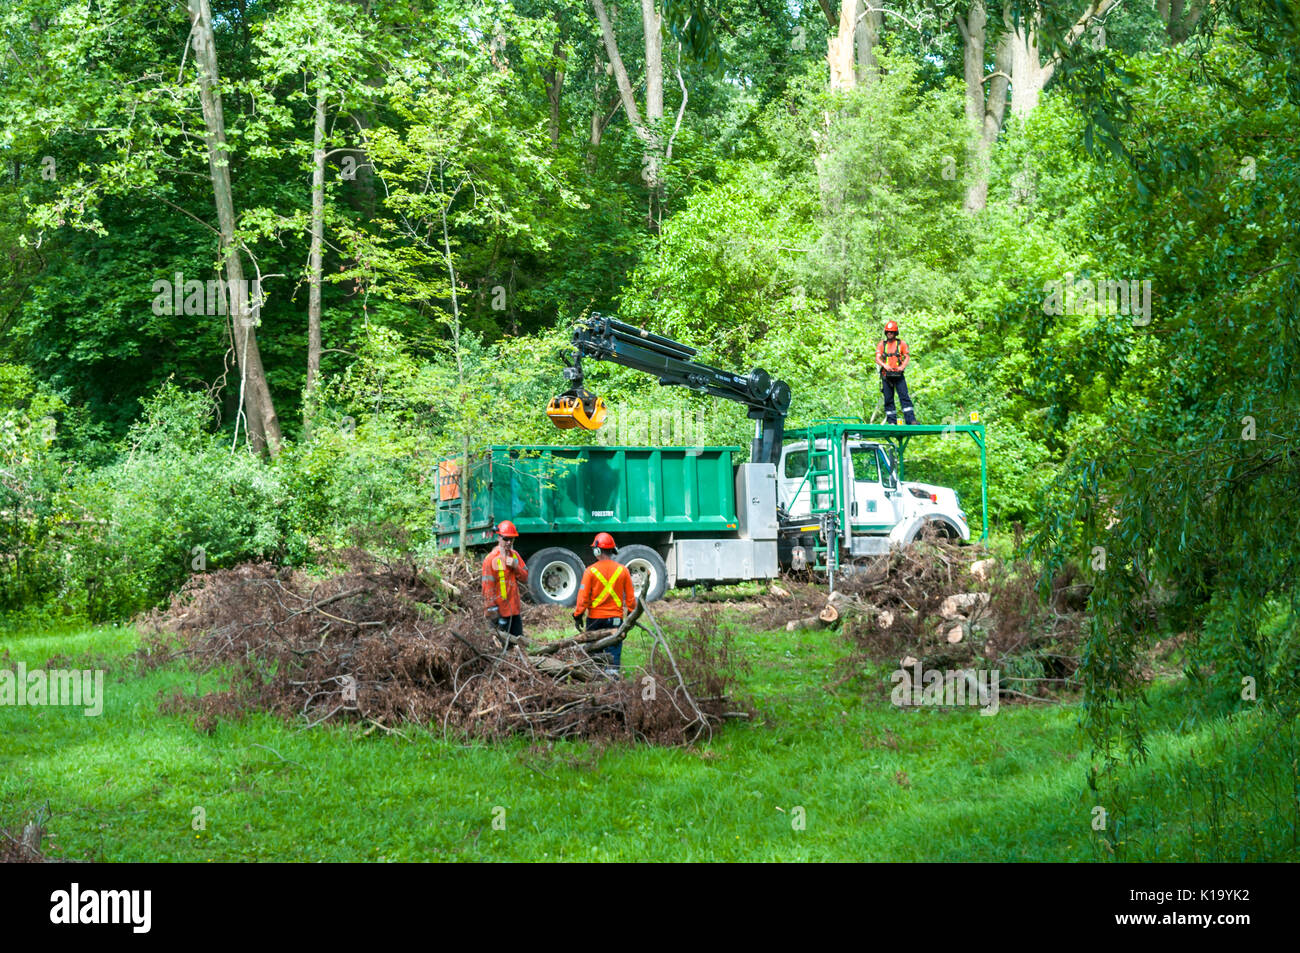 Three workers load a truck with sections of a large tree which fell during a storm, Ontario, Canada - Stock Image